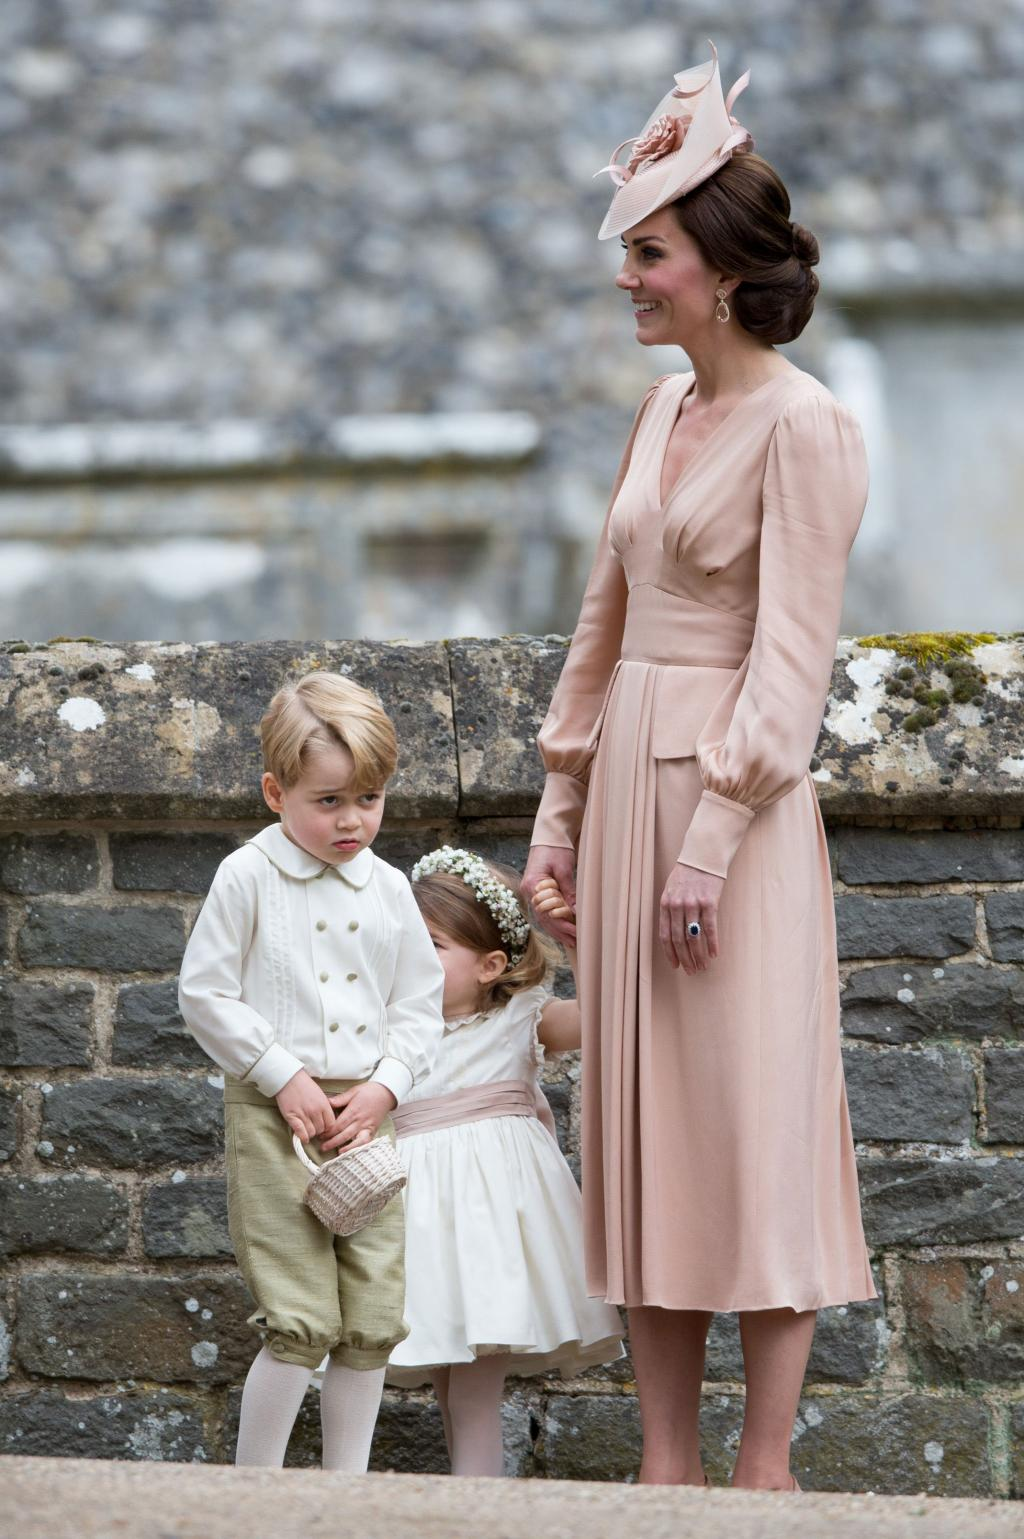 Royal Trouble! Prince George Sobs After Getting Scolded by Kate at Pippa Middleton       's Wedding